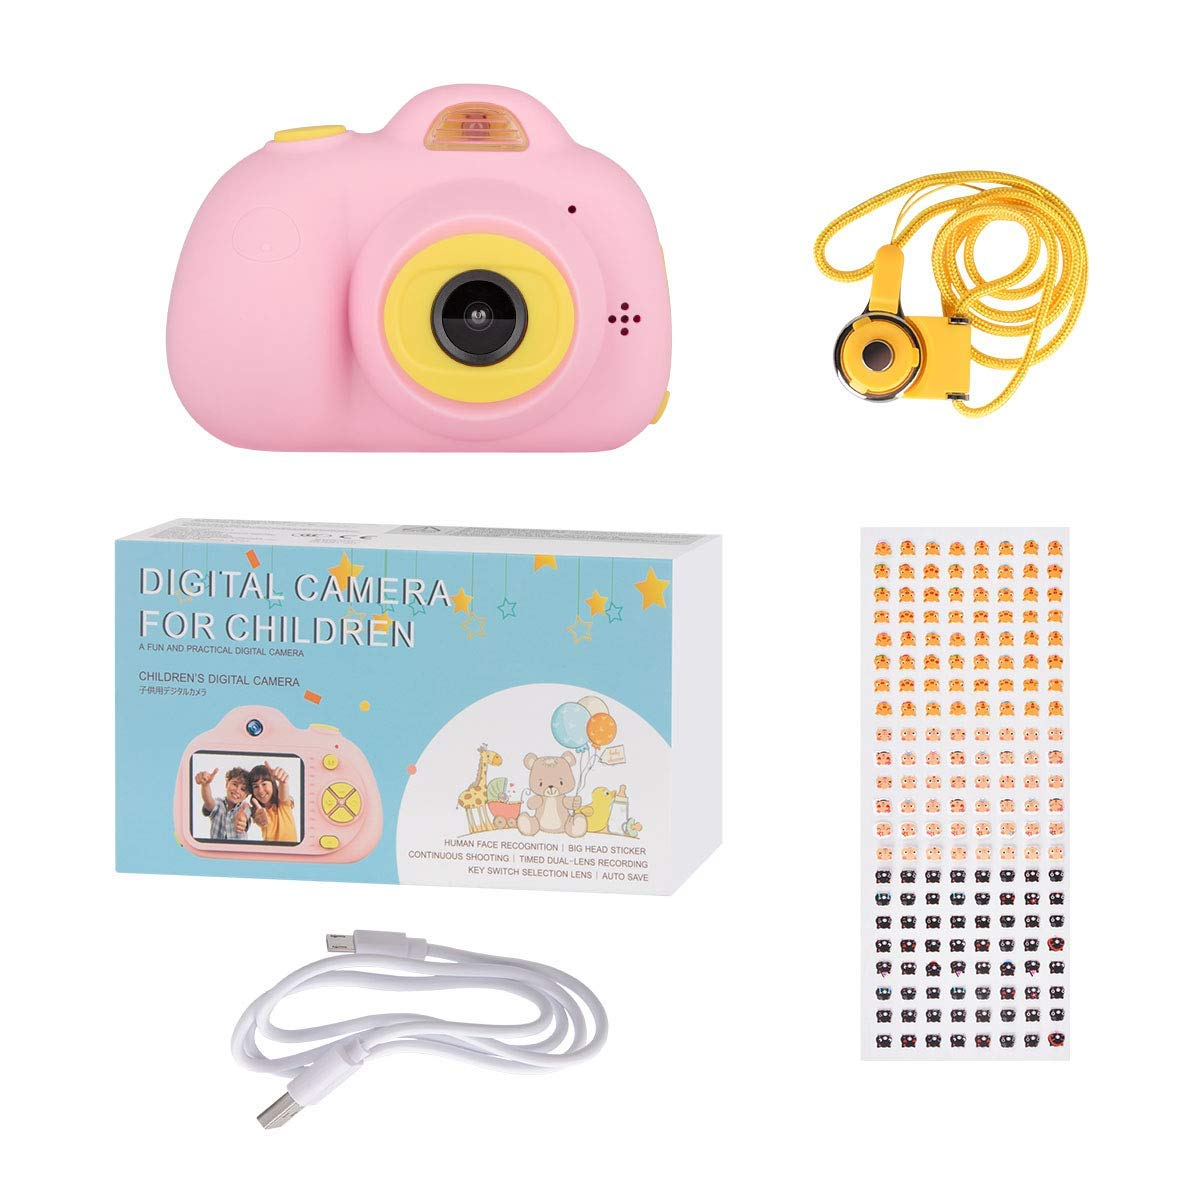 Funkprofi Kids Camera 1080P 8MP Front & Rear Camera Clear Digital Recorder Camcorder for Kids, Selfie Function, Funny Frames, Face Recognition, Support 32GB Memory Card, Best Gift for Boys and Girls by Funkprofi (Image #8)